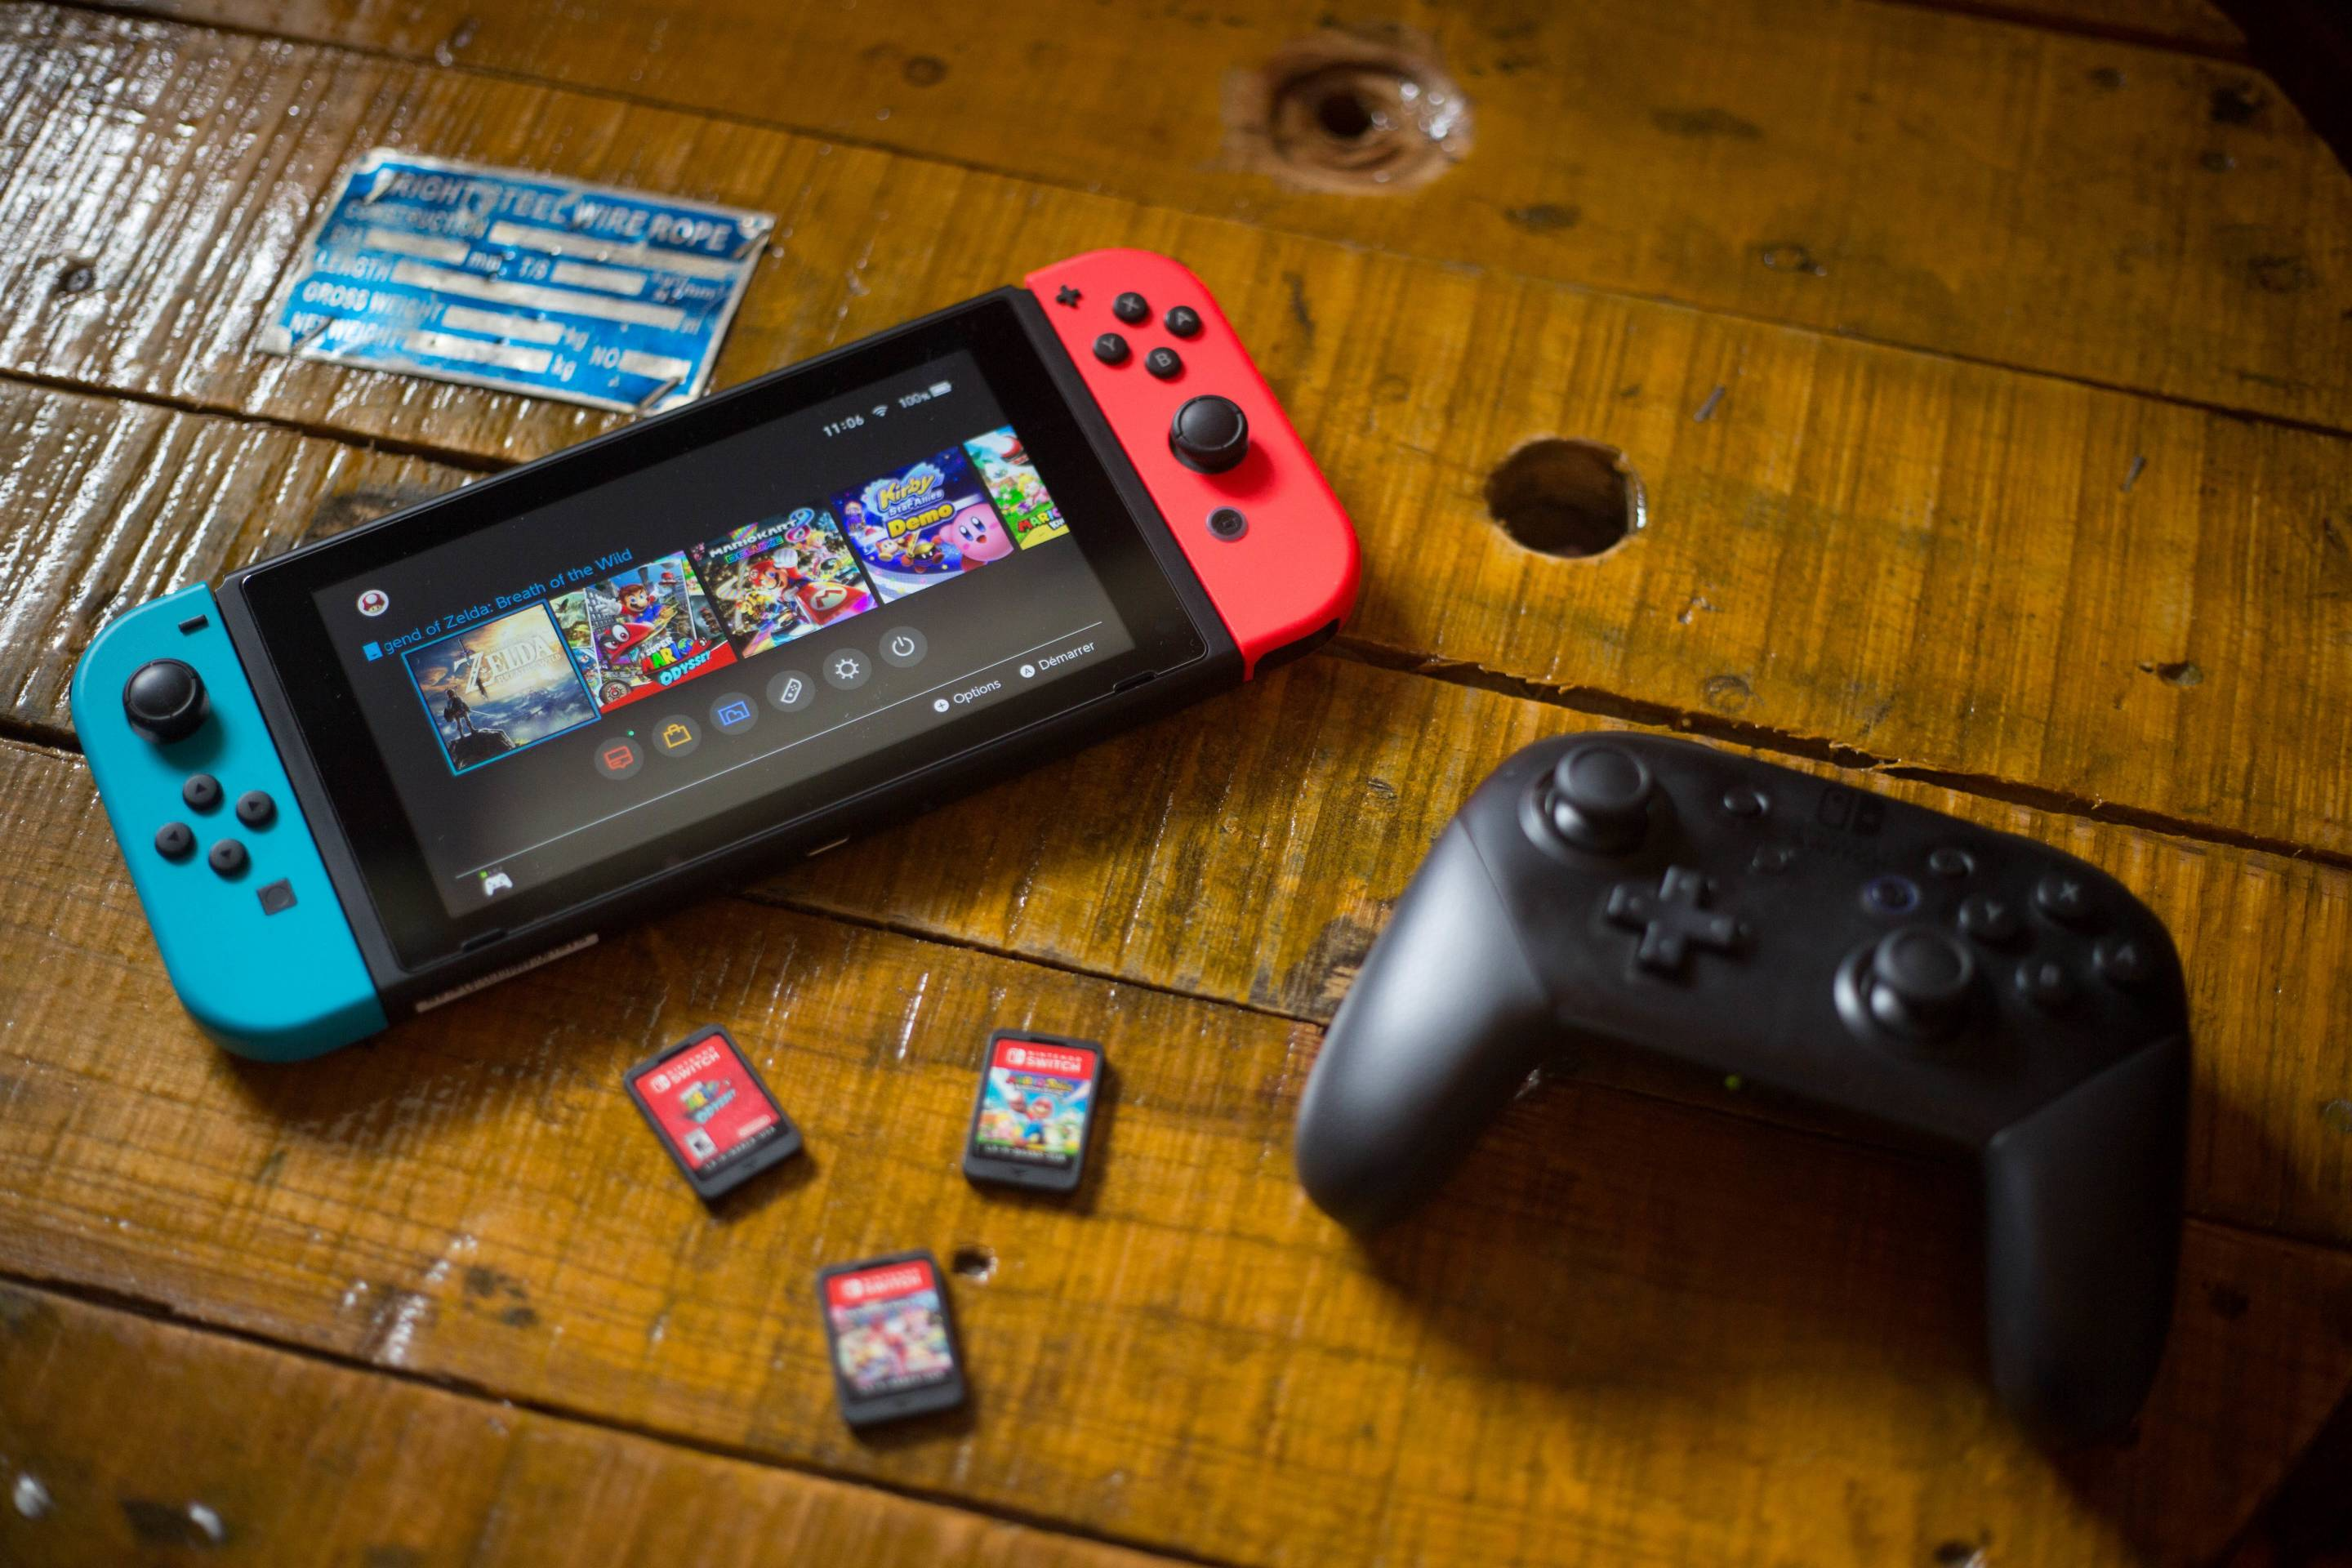 A turned on Nintendo Switch with 2 Joy-Con attached on it, a